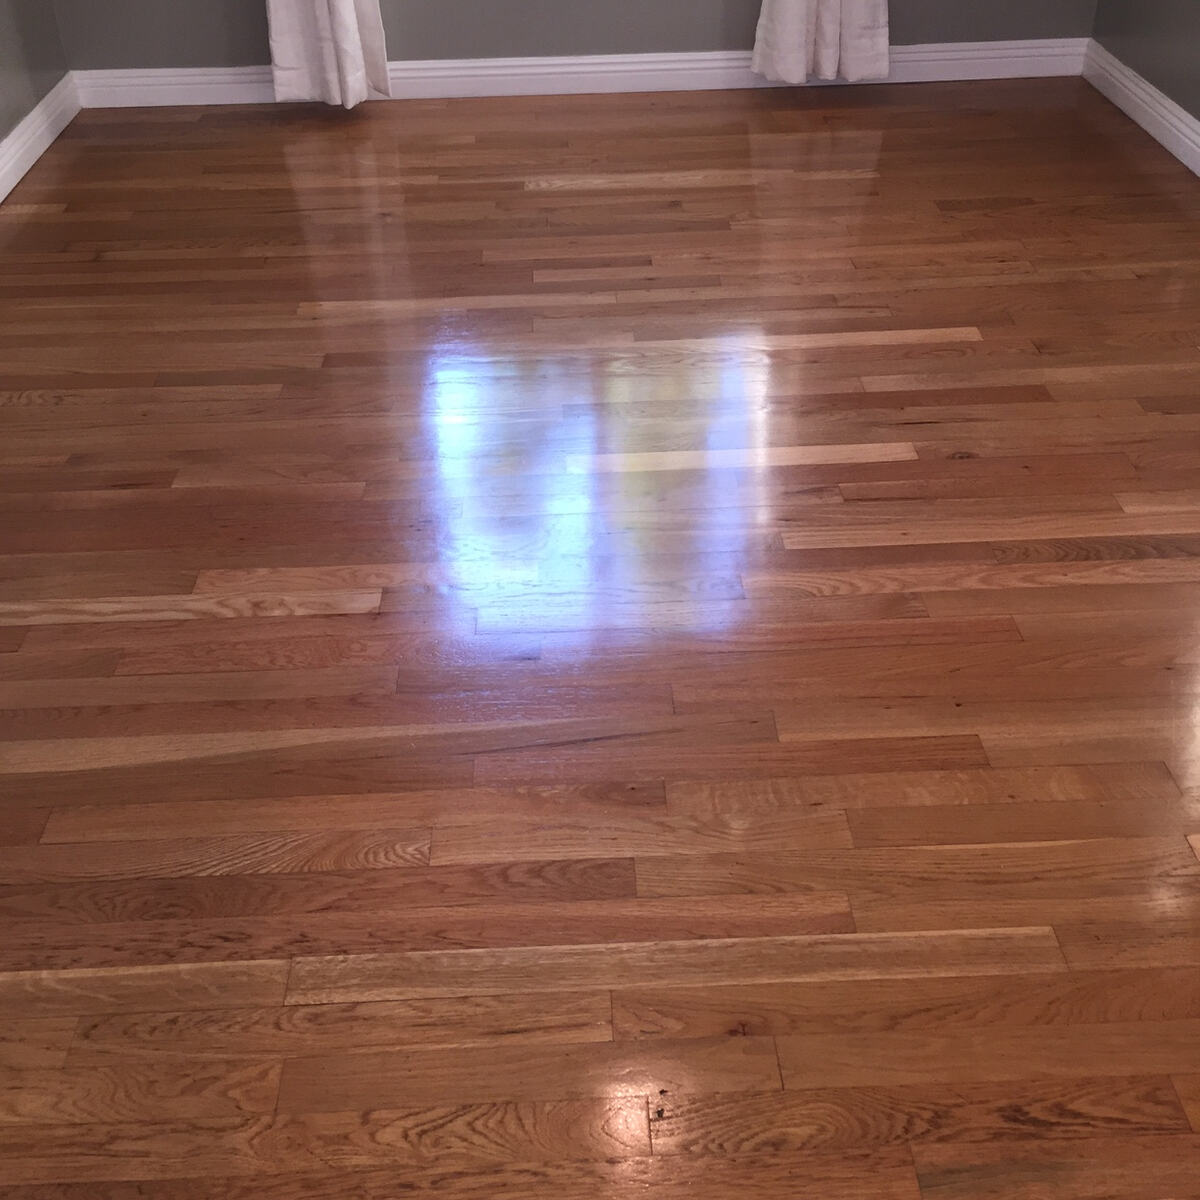 Wood Floor - After Cleaning by Aqua-Dry